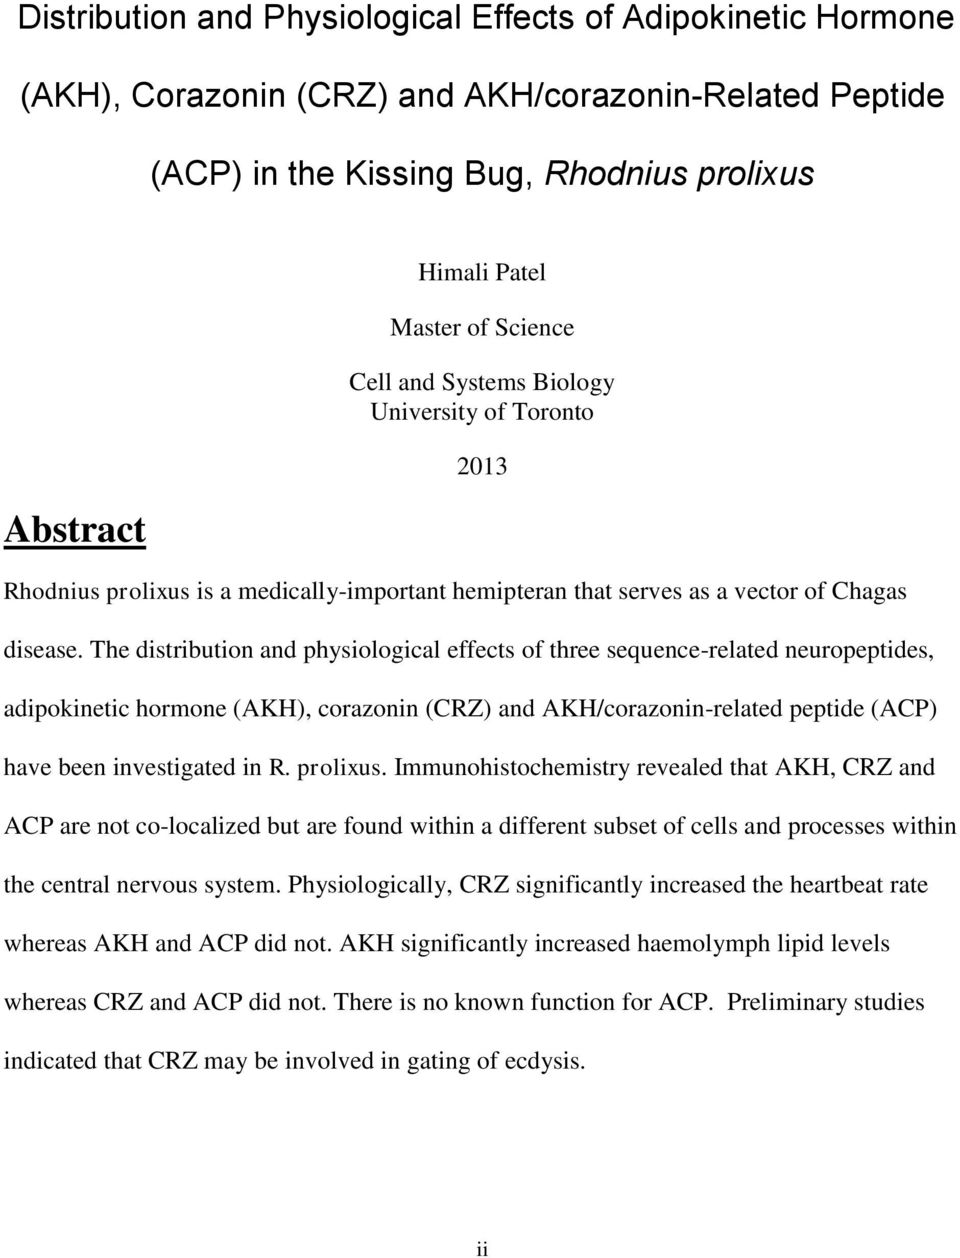 The distribution and physiological effects of three sequence-related neuropeptides, adipokinetic hormone (AKH), corazonin (CRZ) and AKH/corazonin-related peptide (ACP) have been investigated in R.